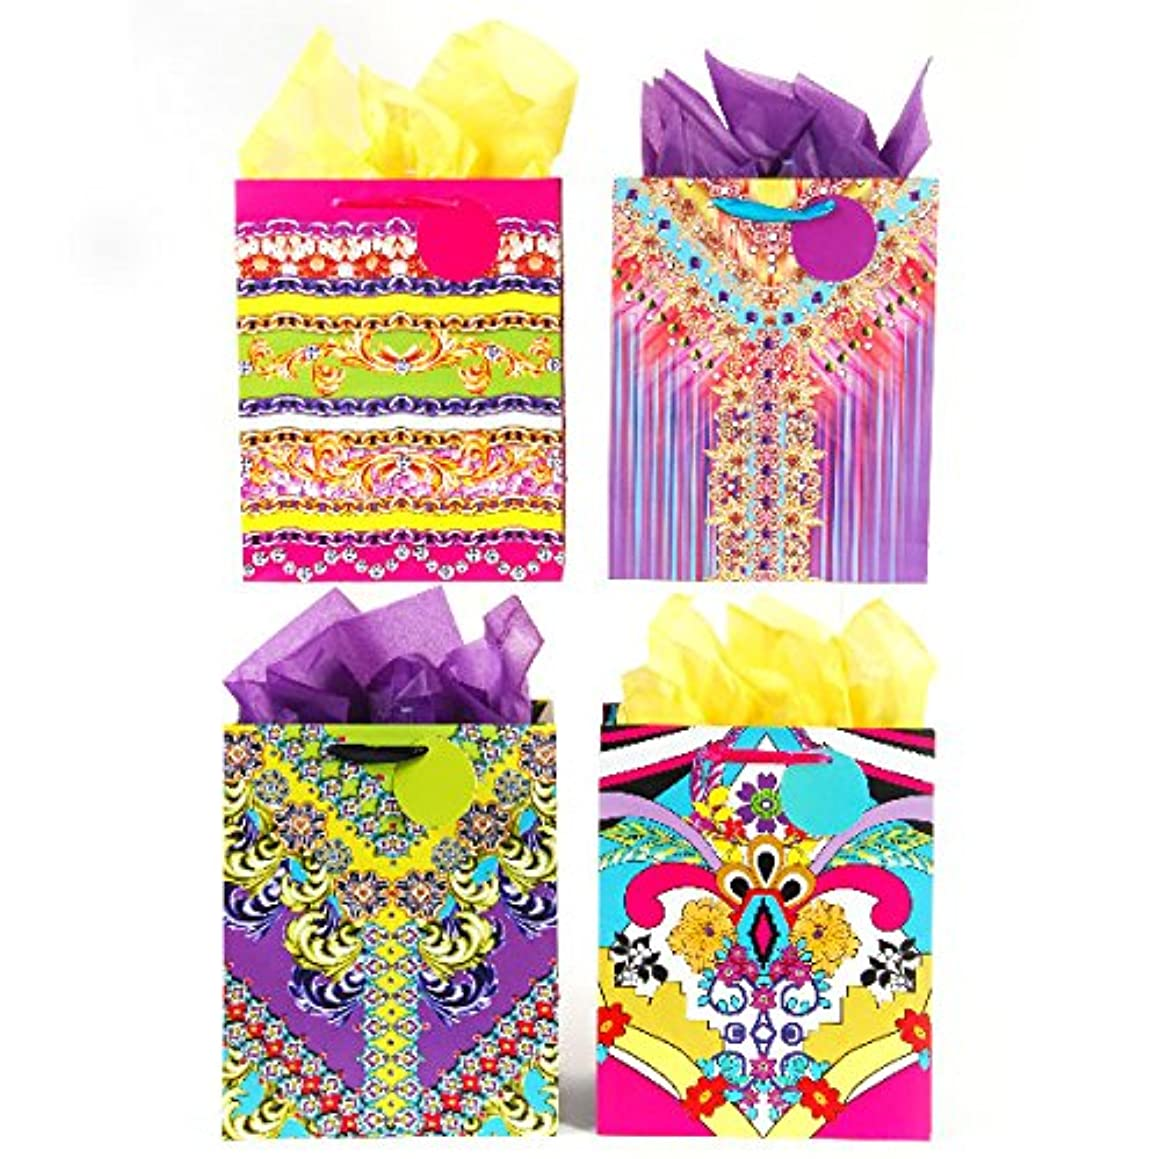 Large Fashion Textiles Gift Bags - Assorted